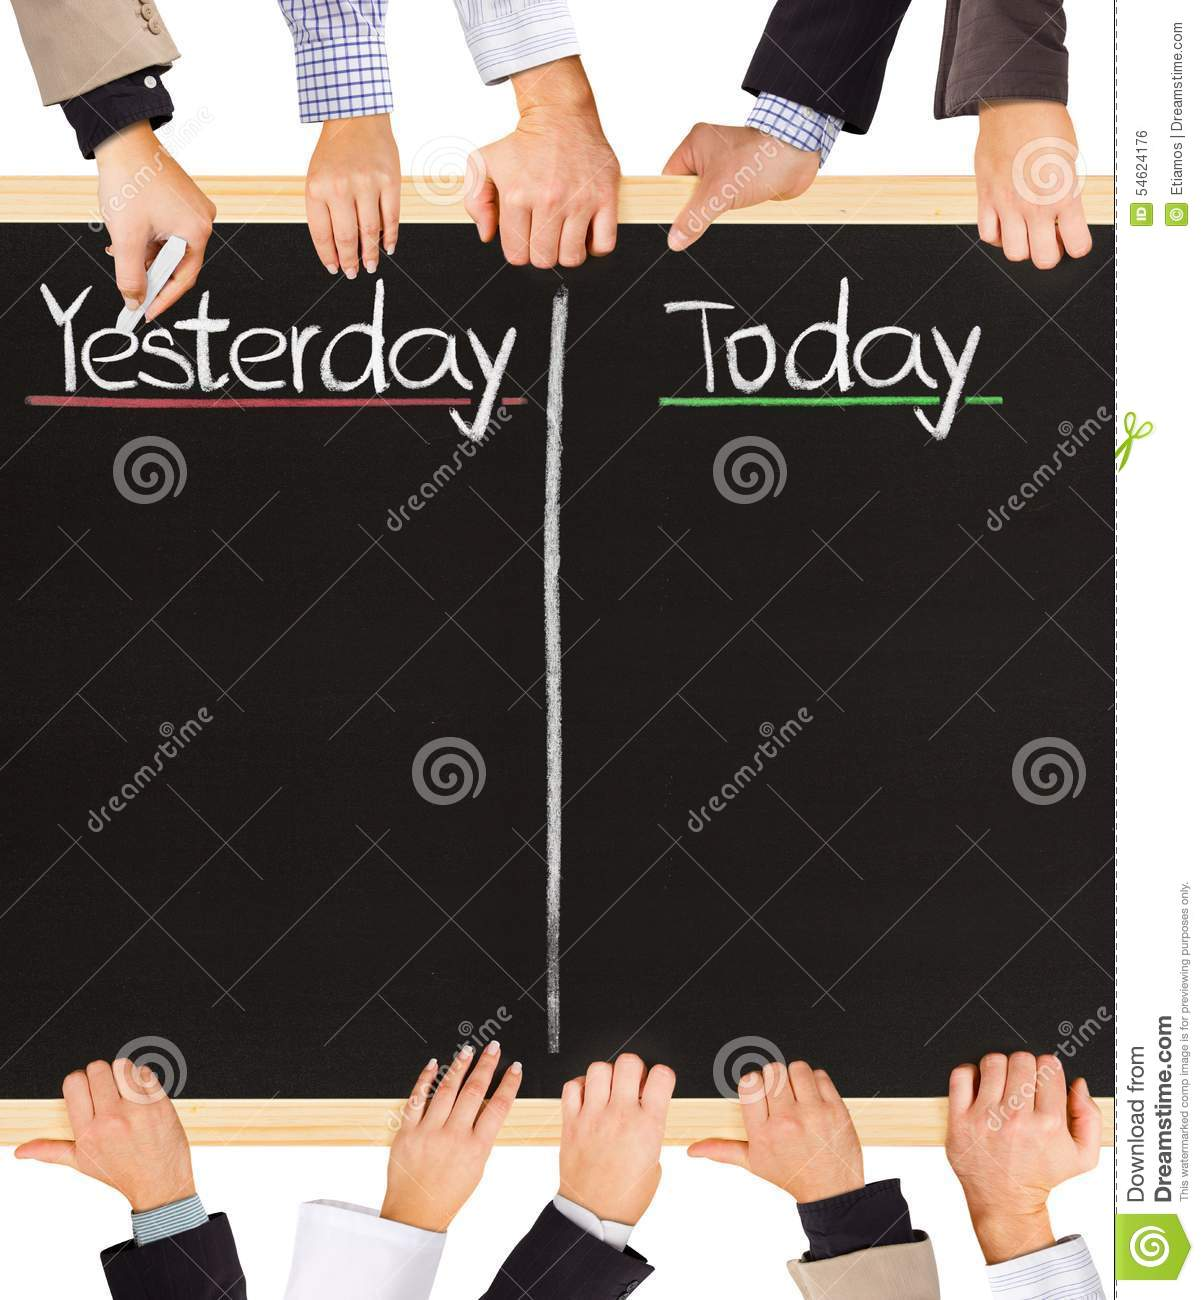 Yesterday, Today Stock Photo - Image: 54624176